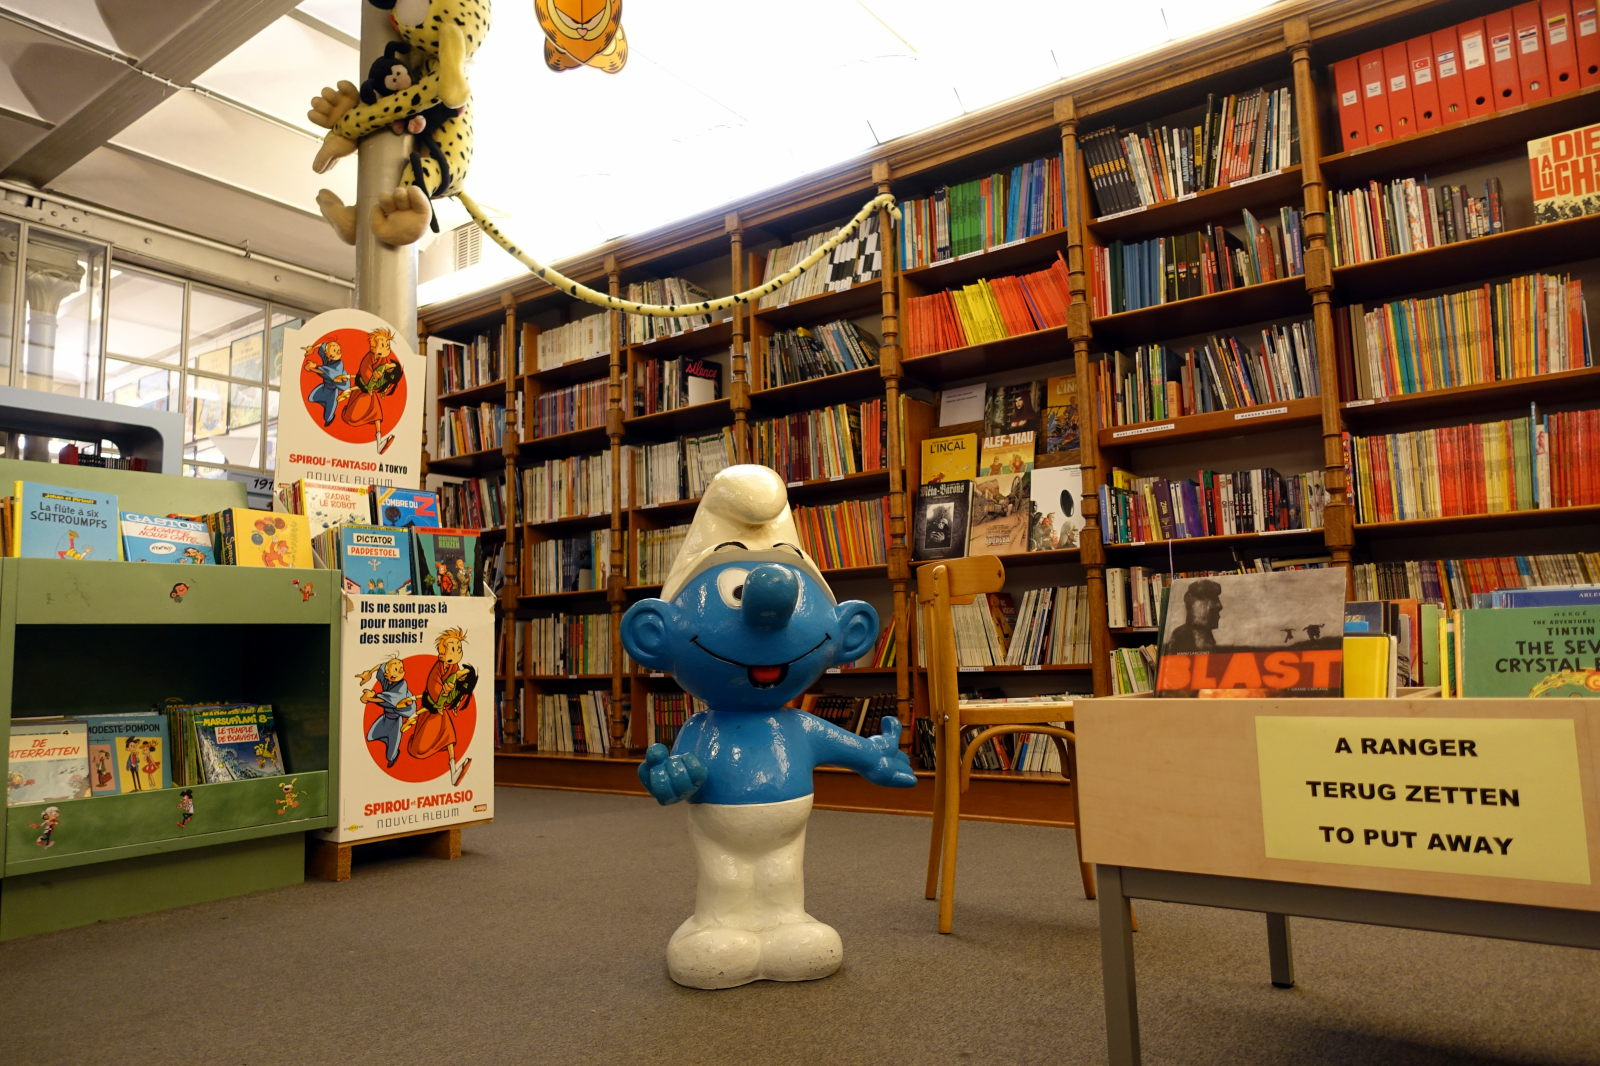 Interior of the library with a Smurf statue.